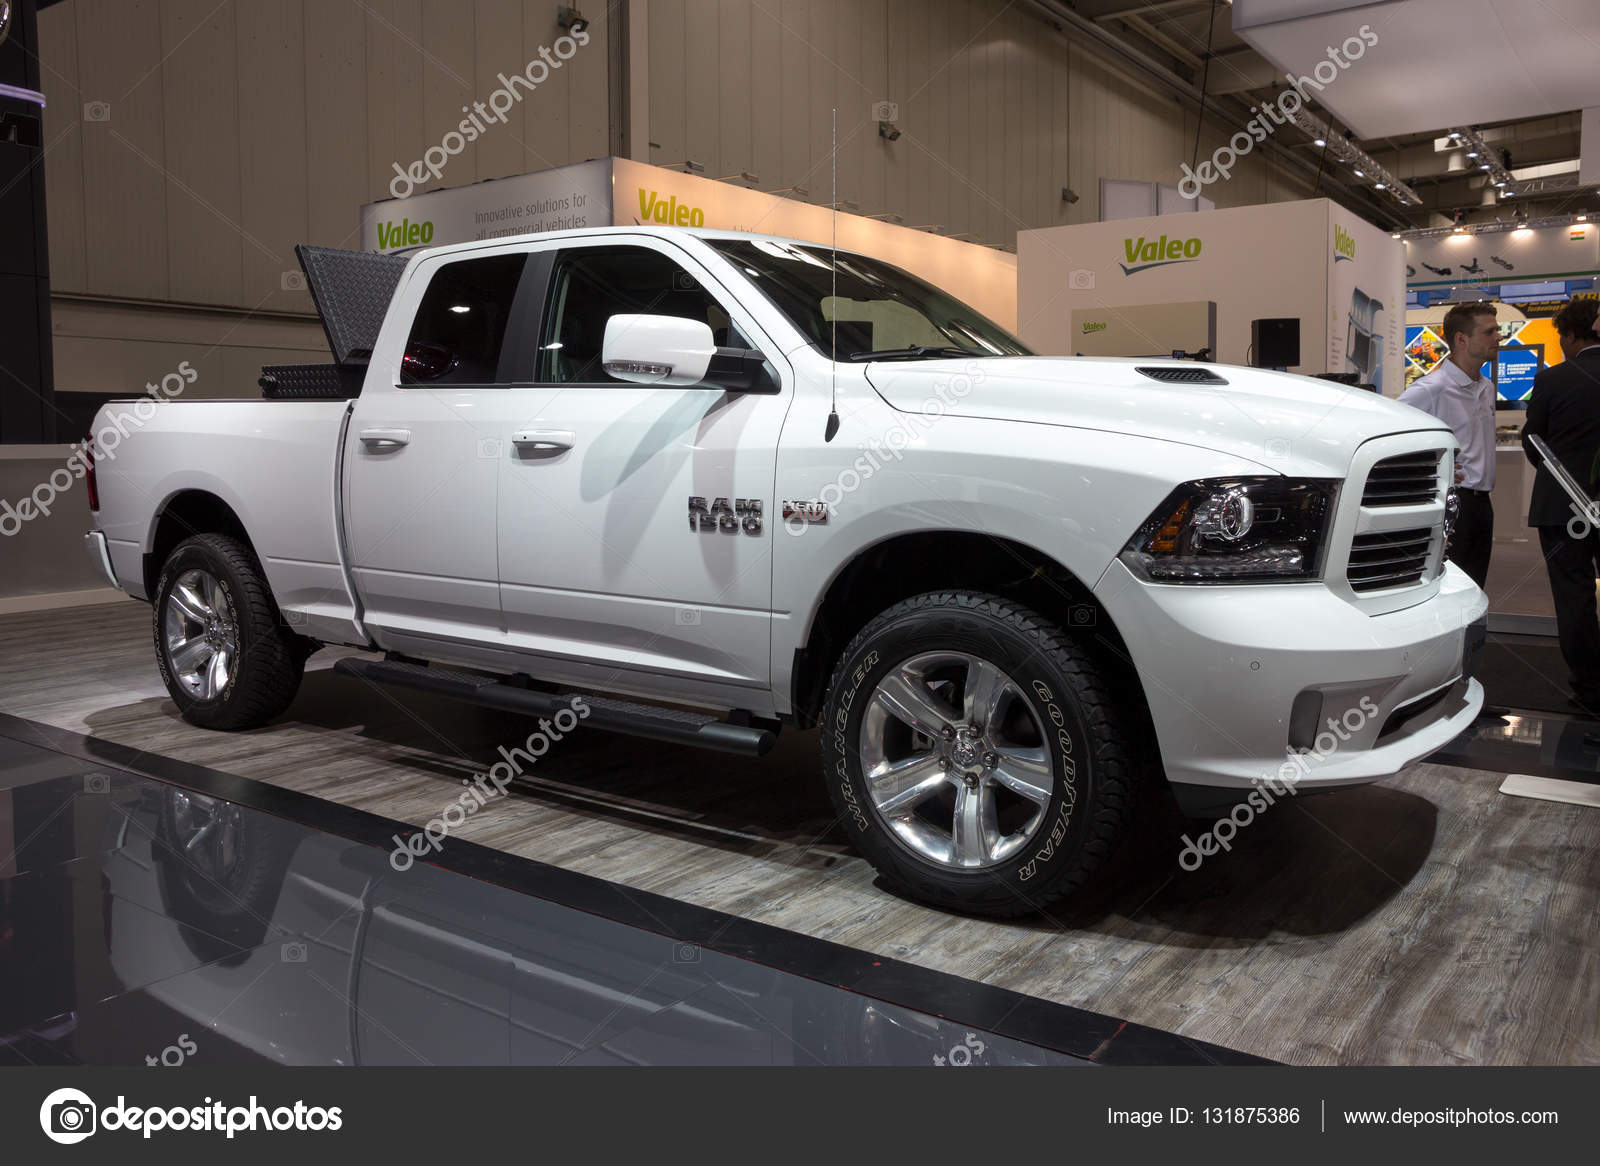 Dodge Ram 1500 Stock Editorial Photo Foto Vdw 131875386 Motor Hannover Germany Sep 21 2016 New Pickup Truck Presented At The International Show For Commercial Vehicles